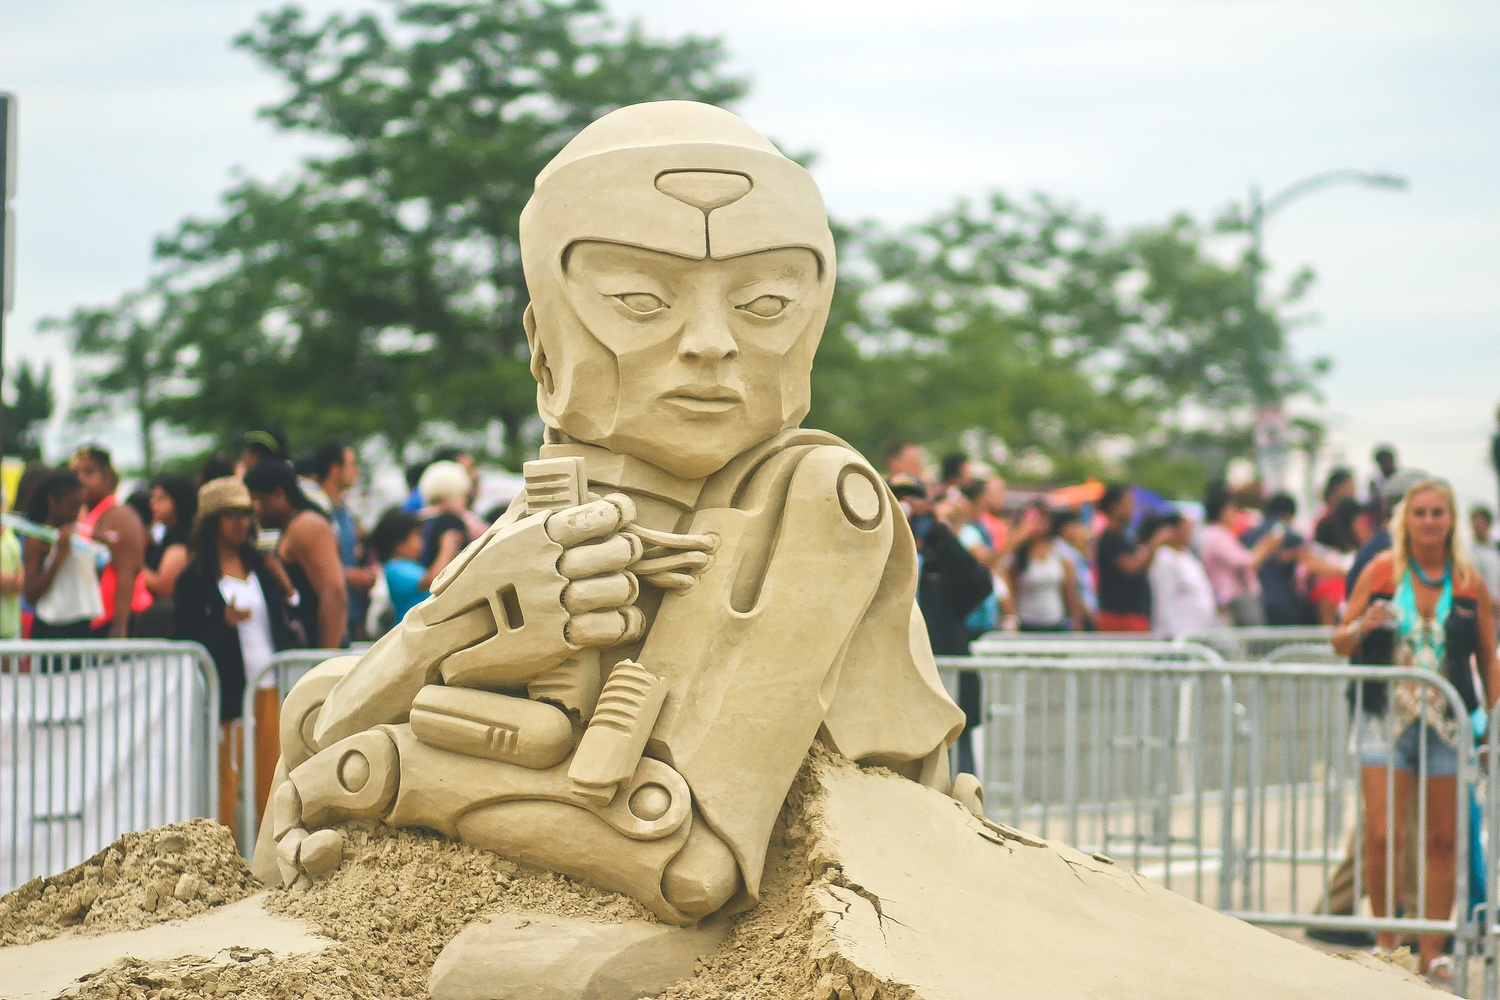 A sculpture stands at the annual Revere Beach National Sand Sculpting Festival, which lasted from July 18th to July 20th. Sculptors had a total of 24 hours to complete their pieces.